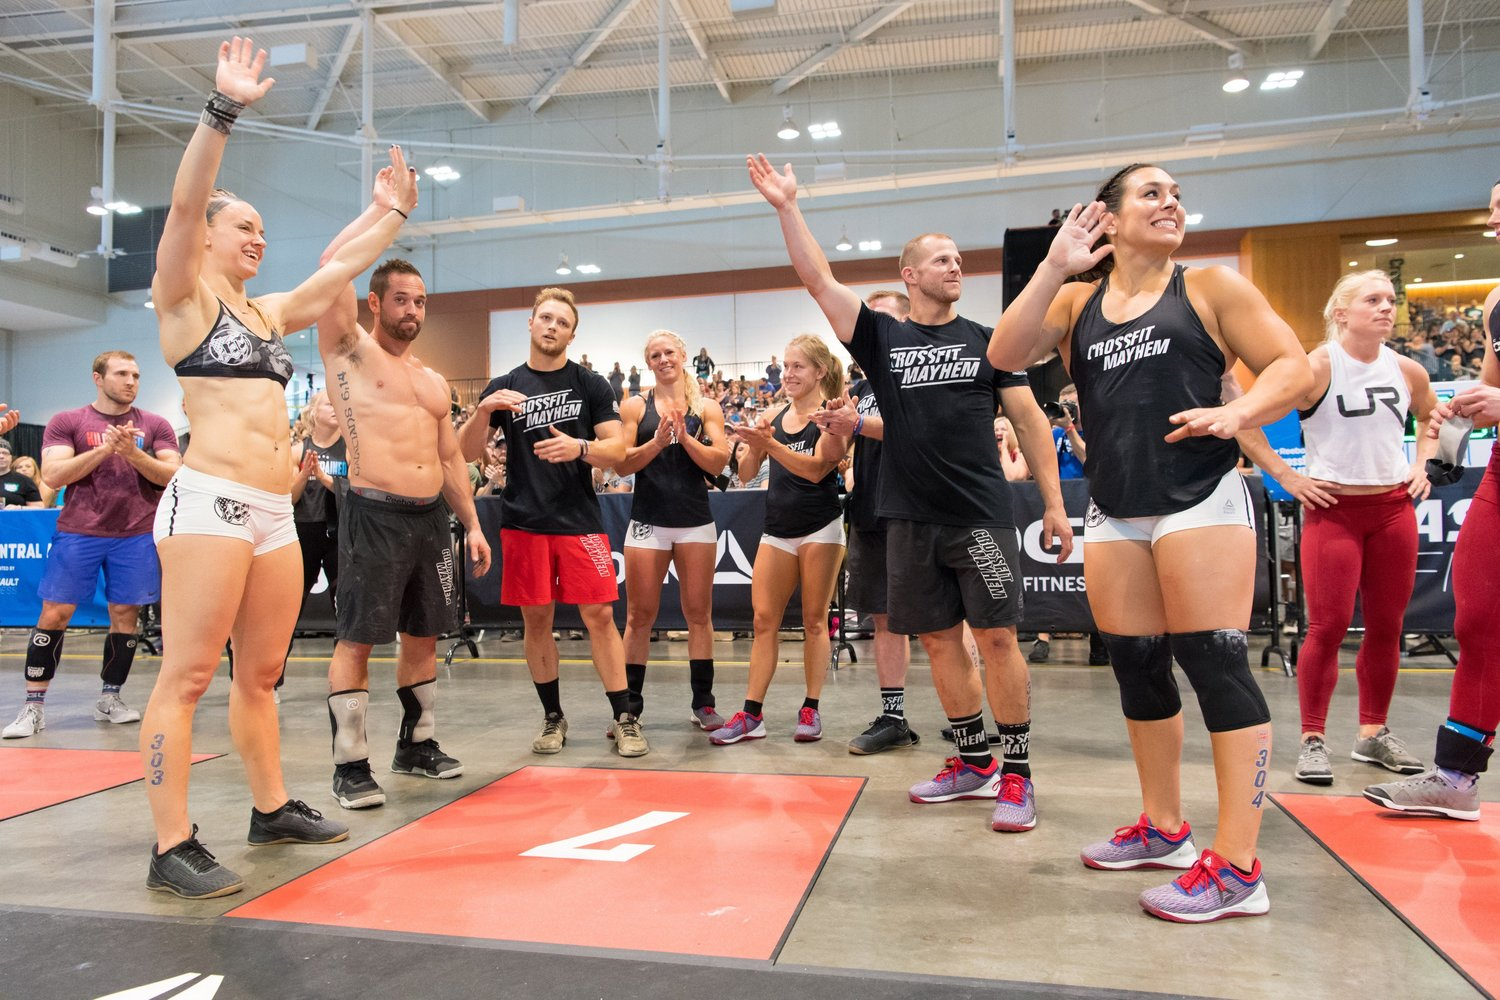 CROSSFIT GAMES UPDATE: TEAM ROSTERS ARE CONFIRMED — VoyEdge RX